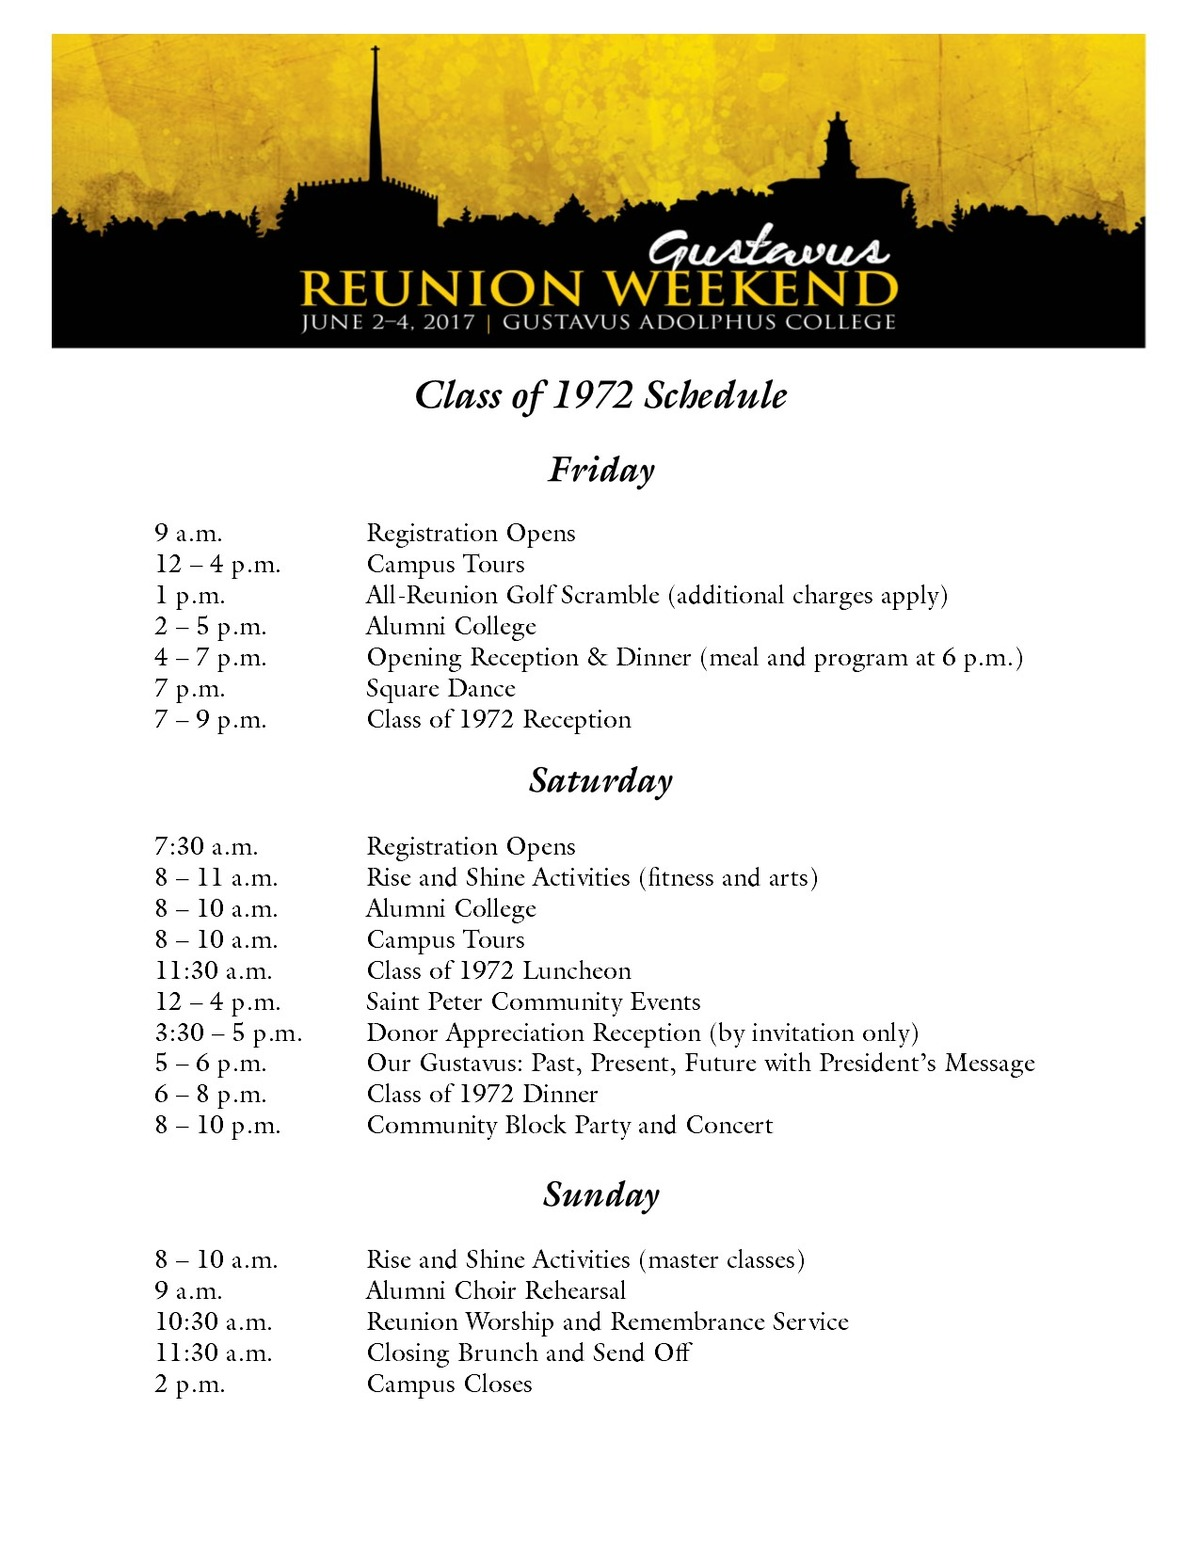 Class of 1972Reunion Weekend Schedule